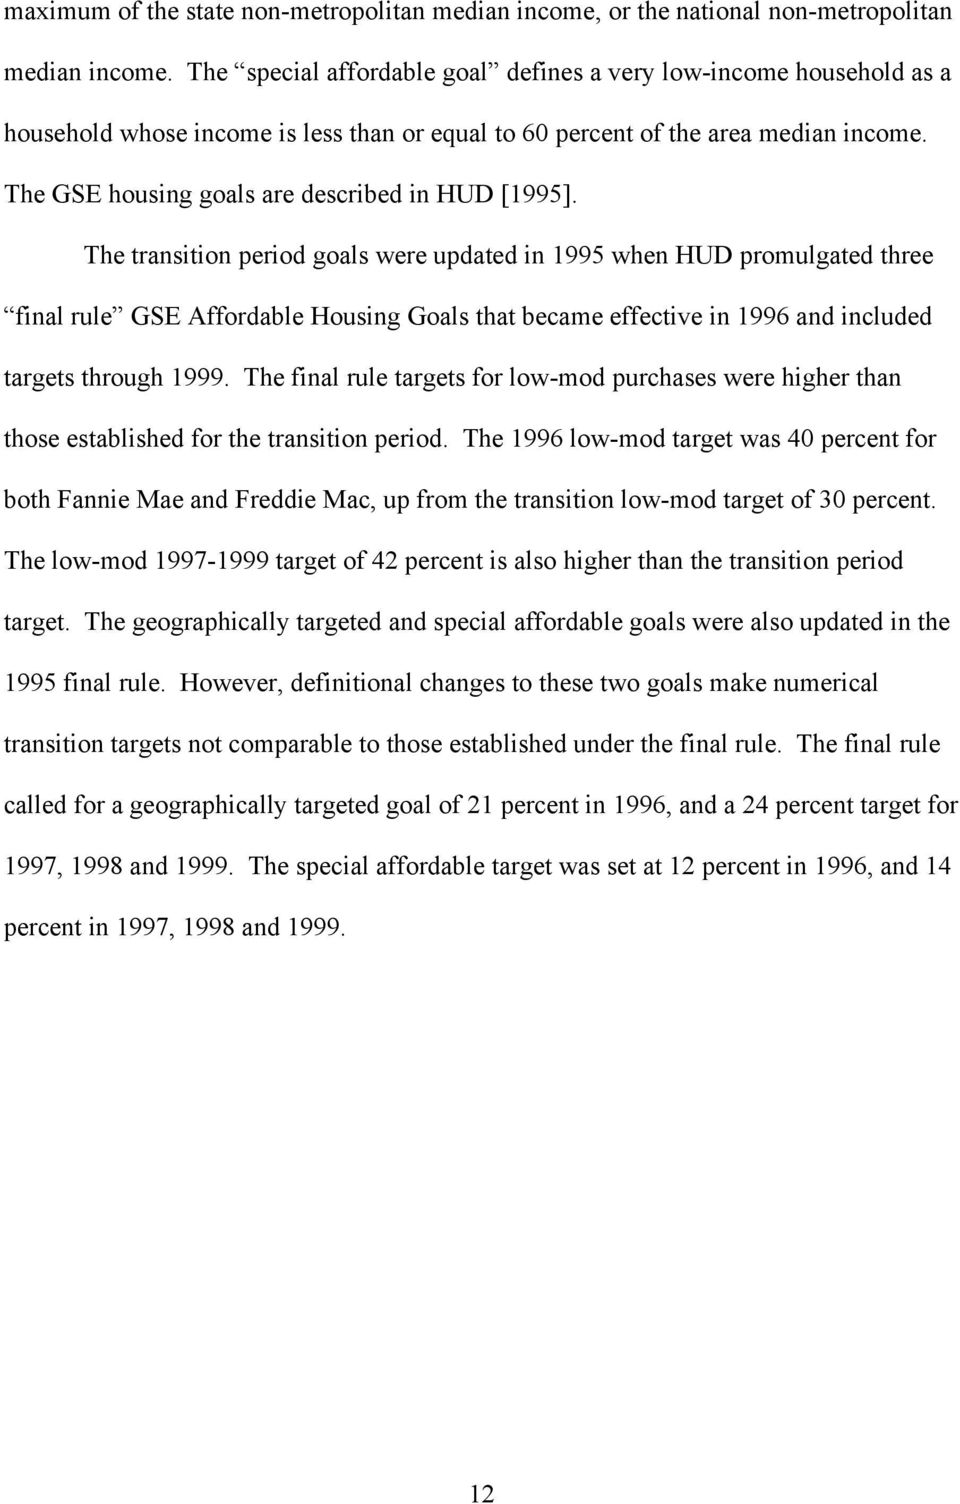 The GSE housing goals are described in HUD [1995].